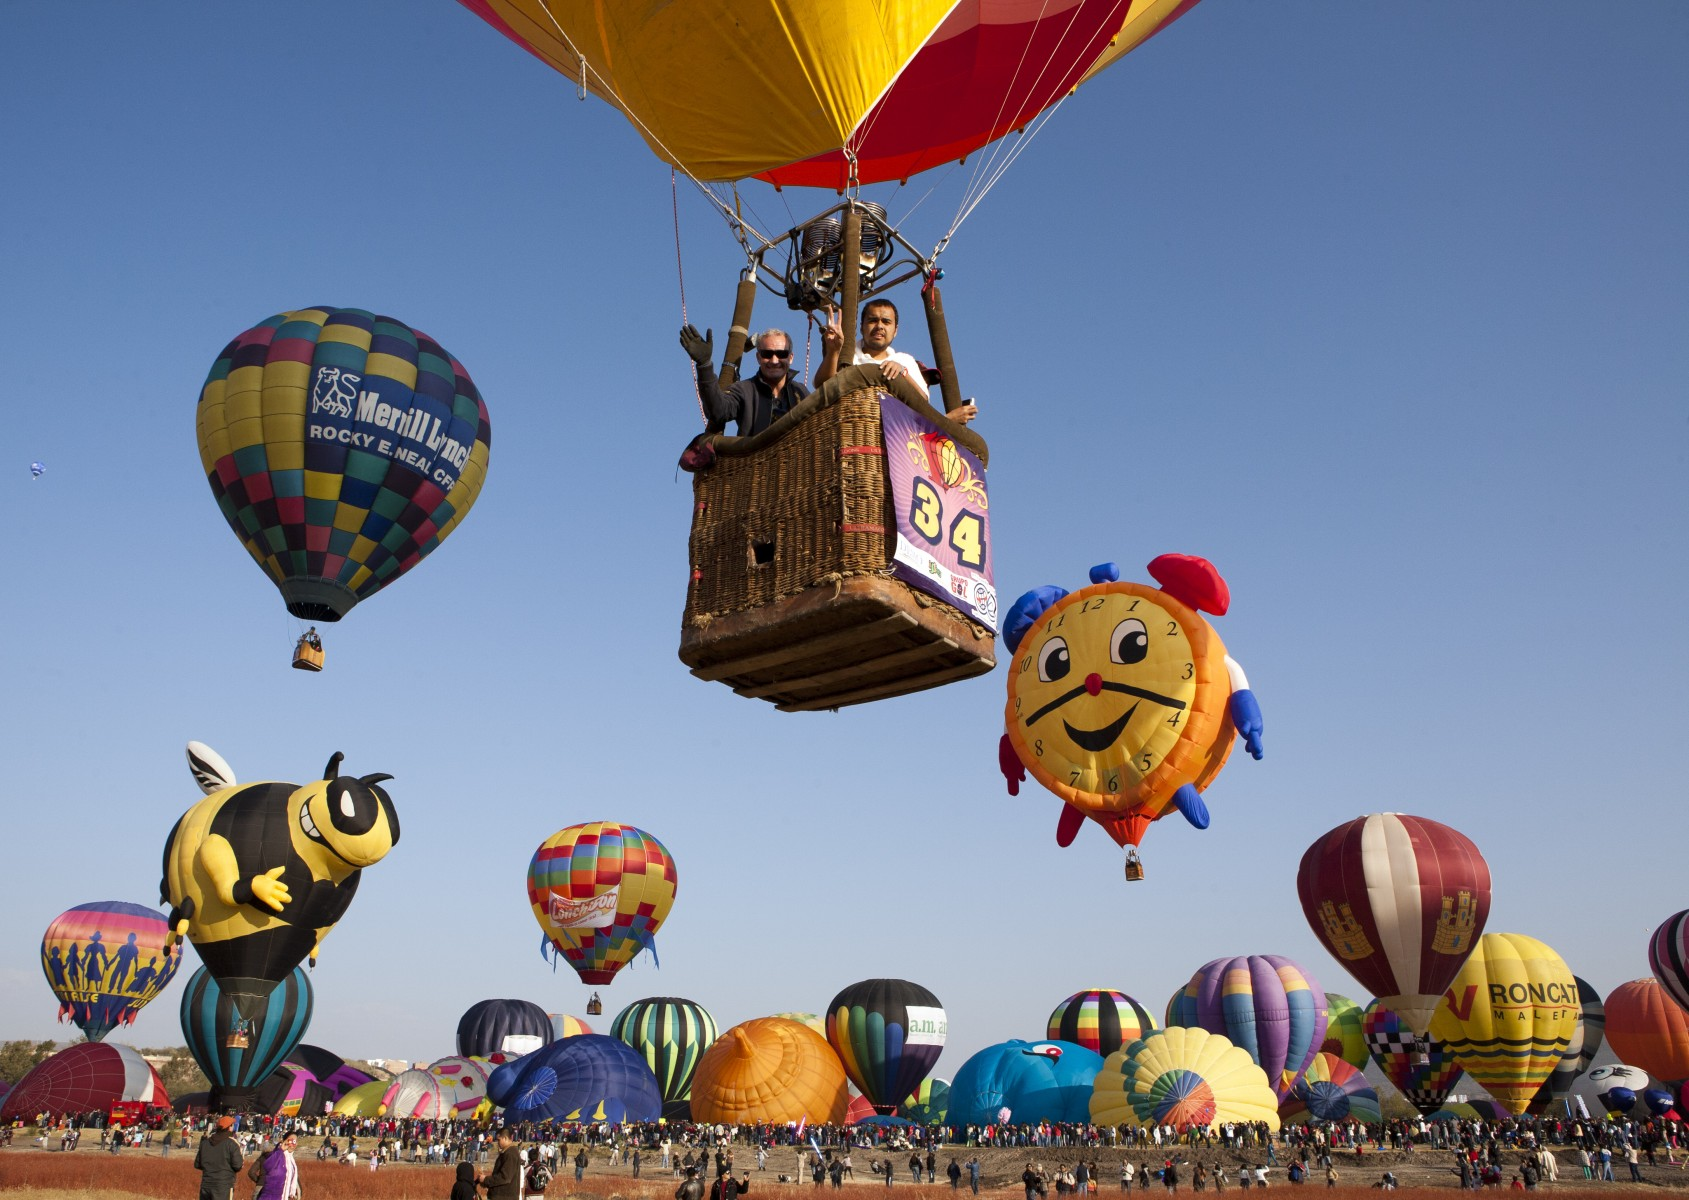 Hot air balloon fest